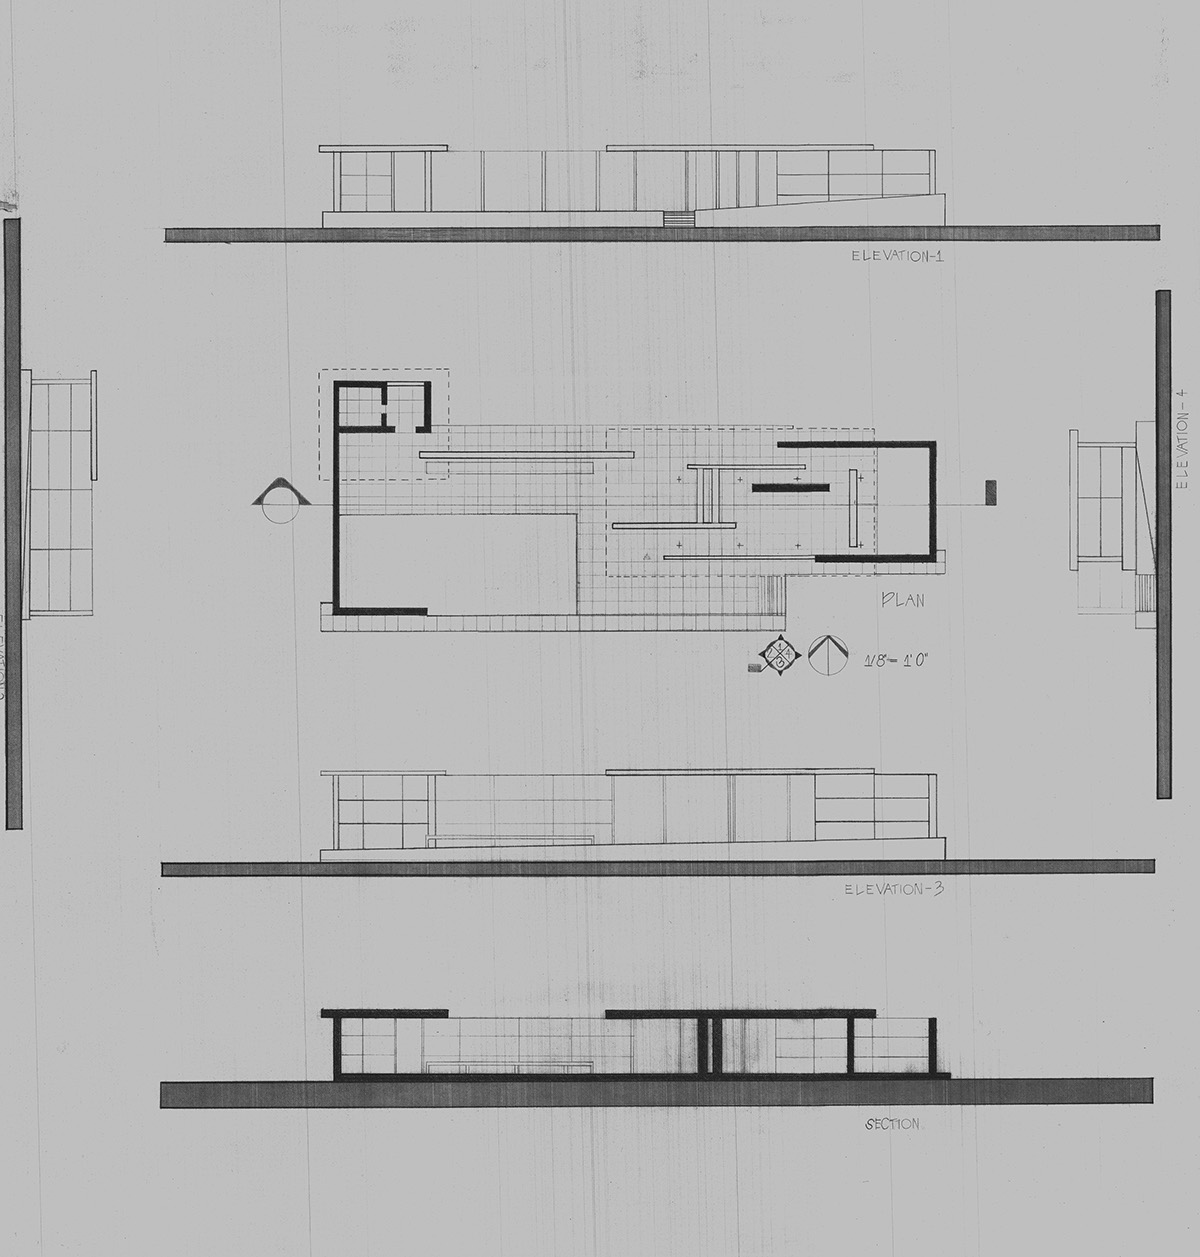 Barcelona pavilion section drawing - Drafted Plan And Elevations